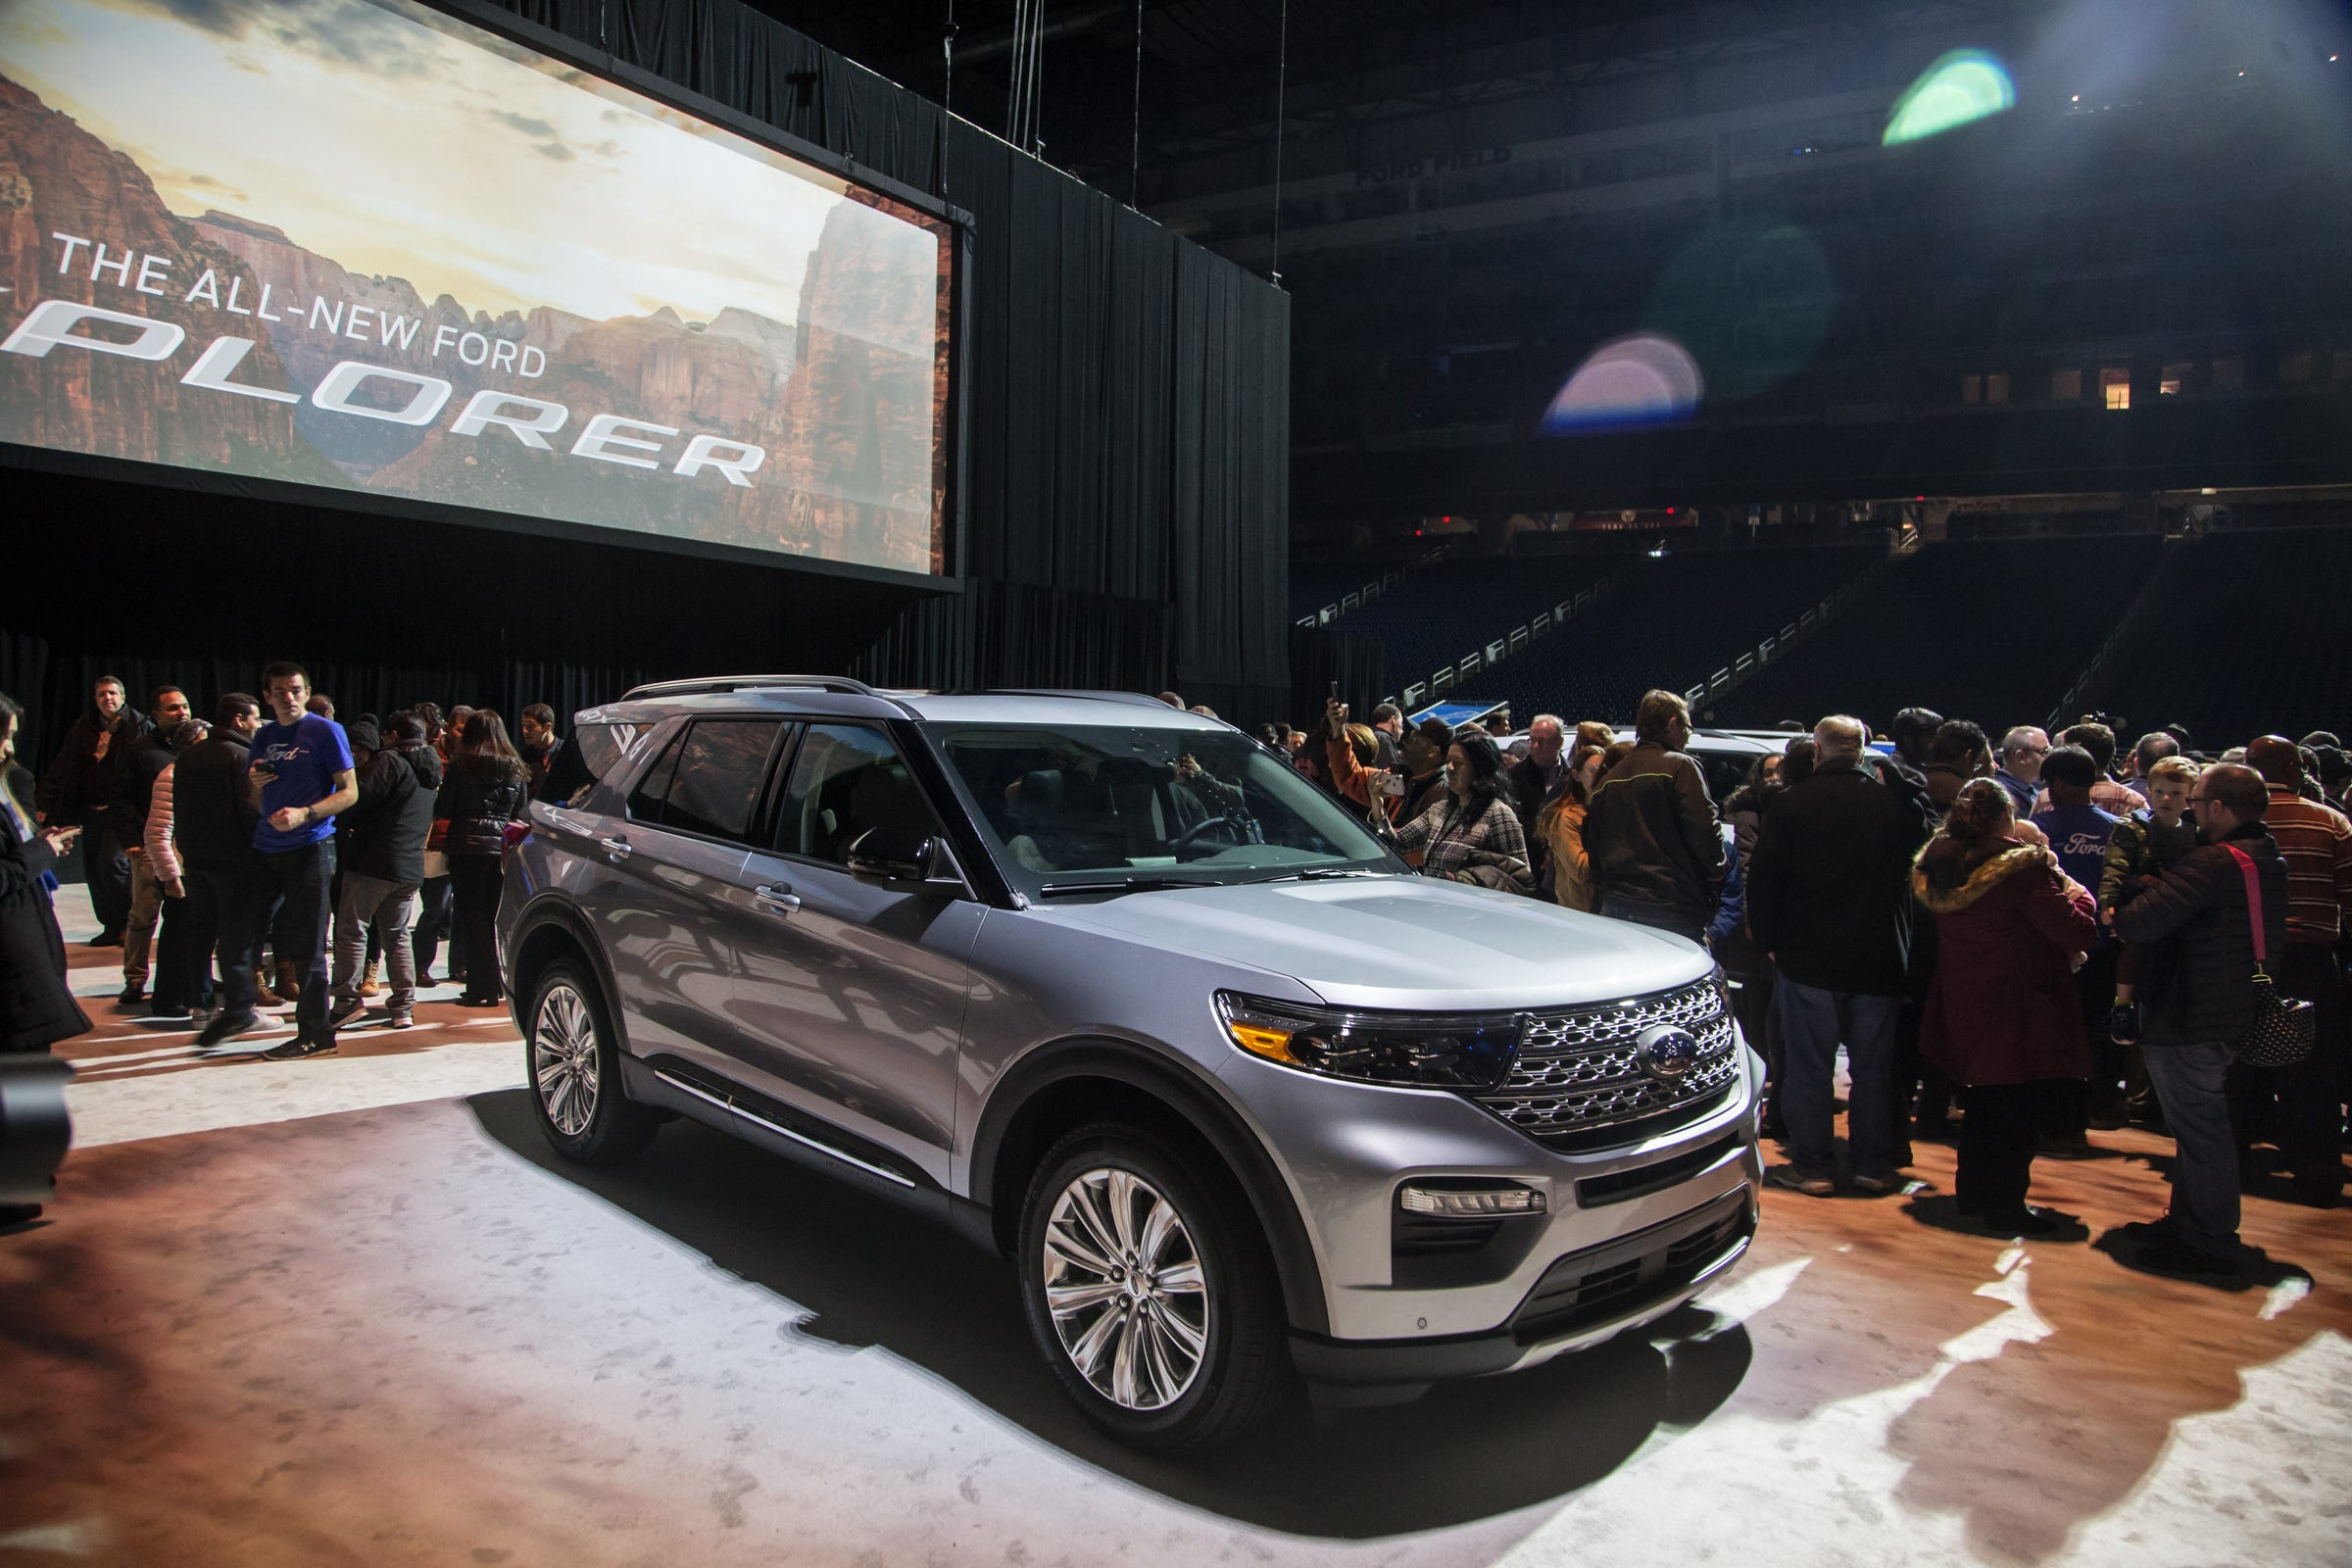 2020 ford explorer reveal what\u0027s different about new model